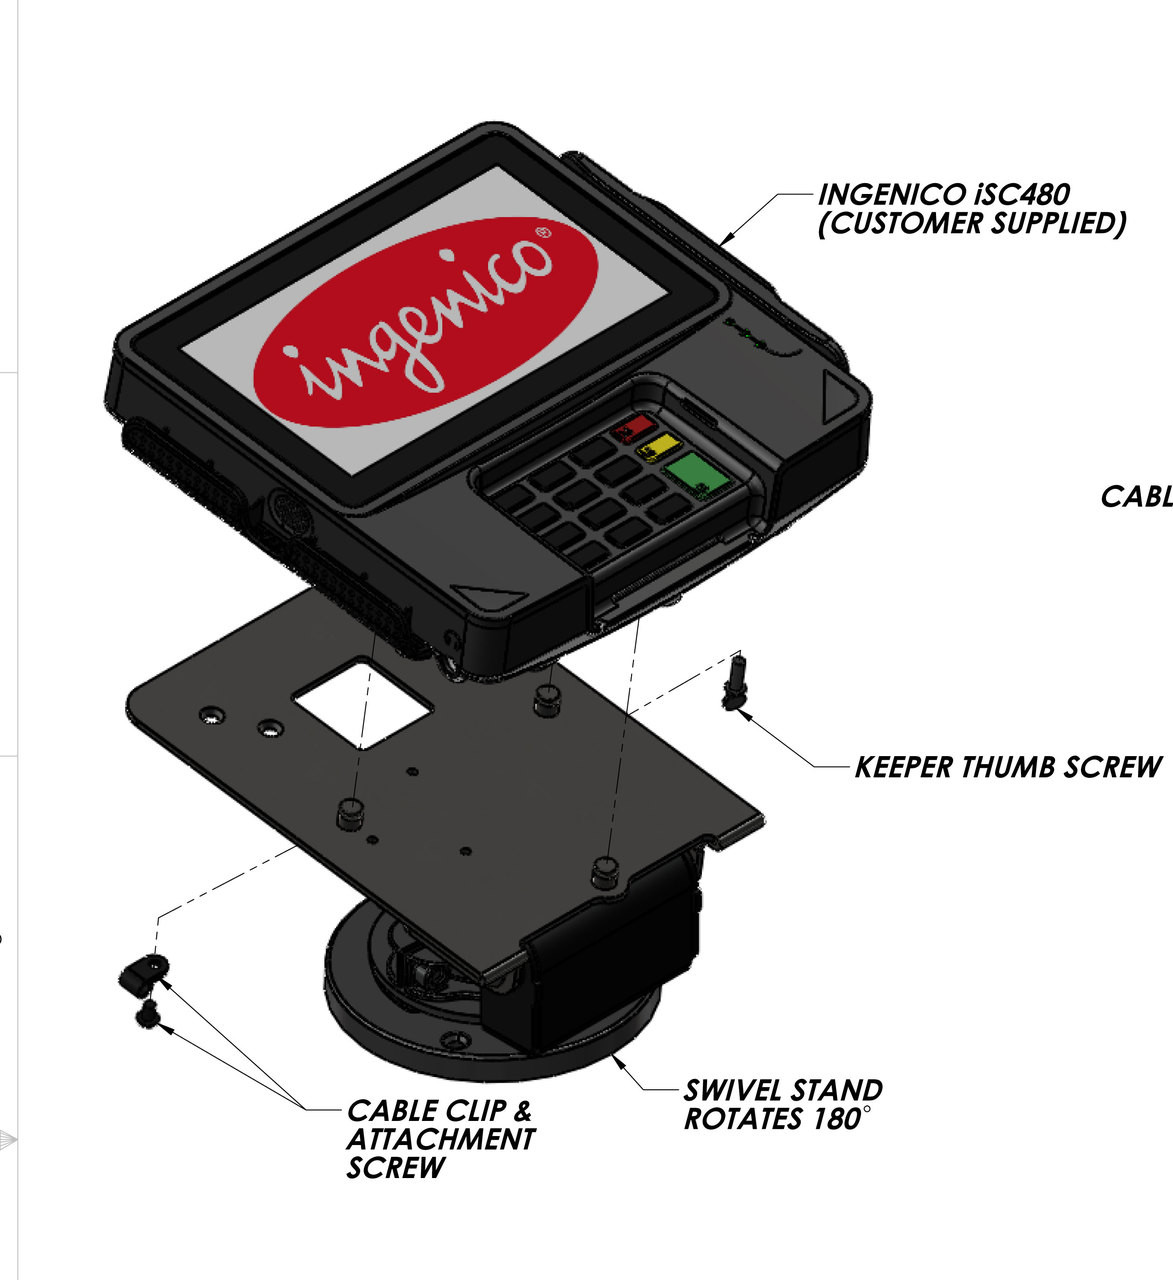 Swivel Stands Credit Card Stand Low Profile Ingenico iSC480